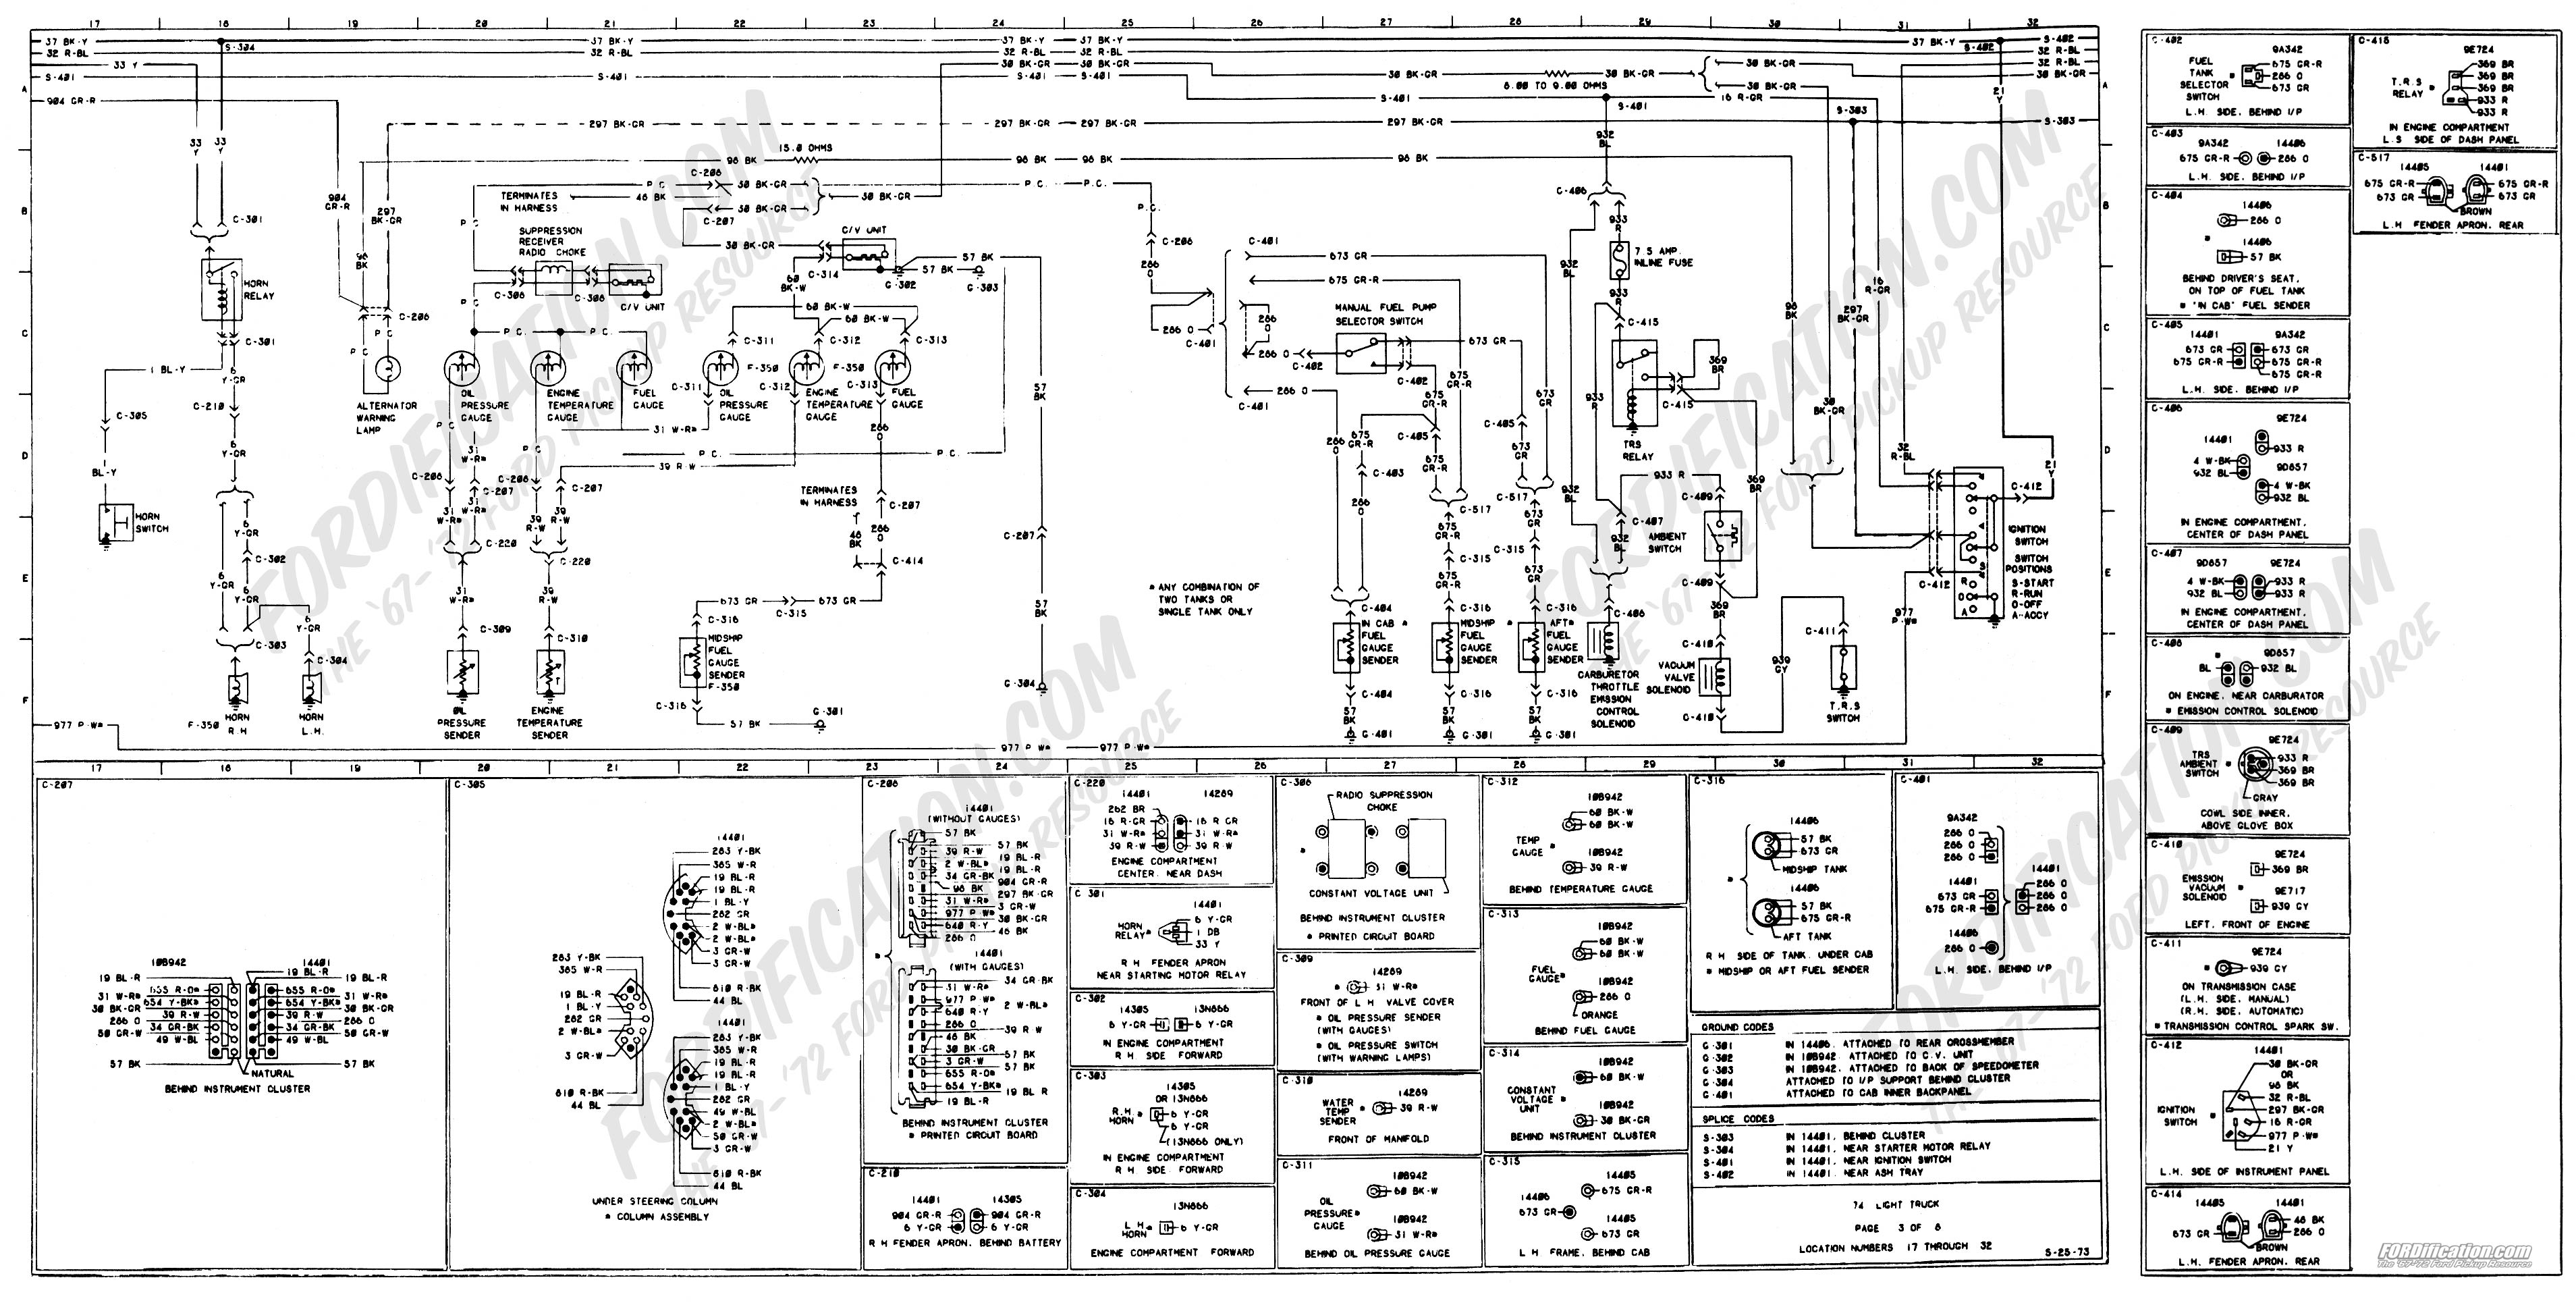 1977 Ford Mustang Headlight Wiring Diagram Start Building A 2010 Lights 79 Truck Schematic Rh Asparklingjourney Com 2012 F 750 No Dash Ac Starter